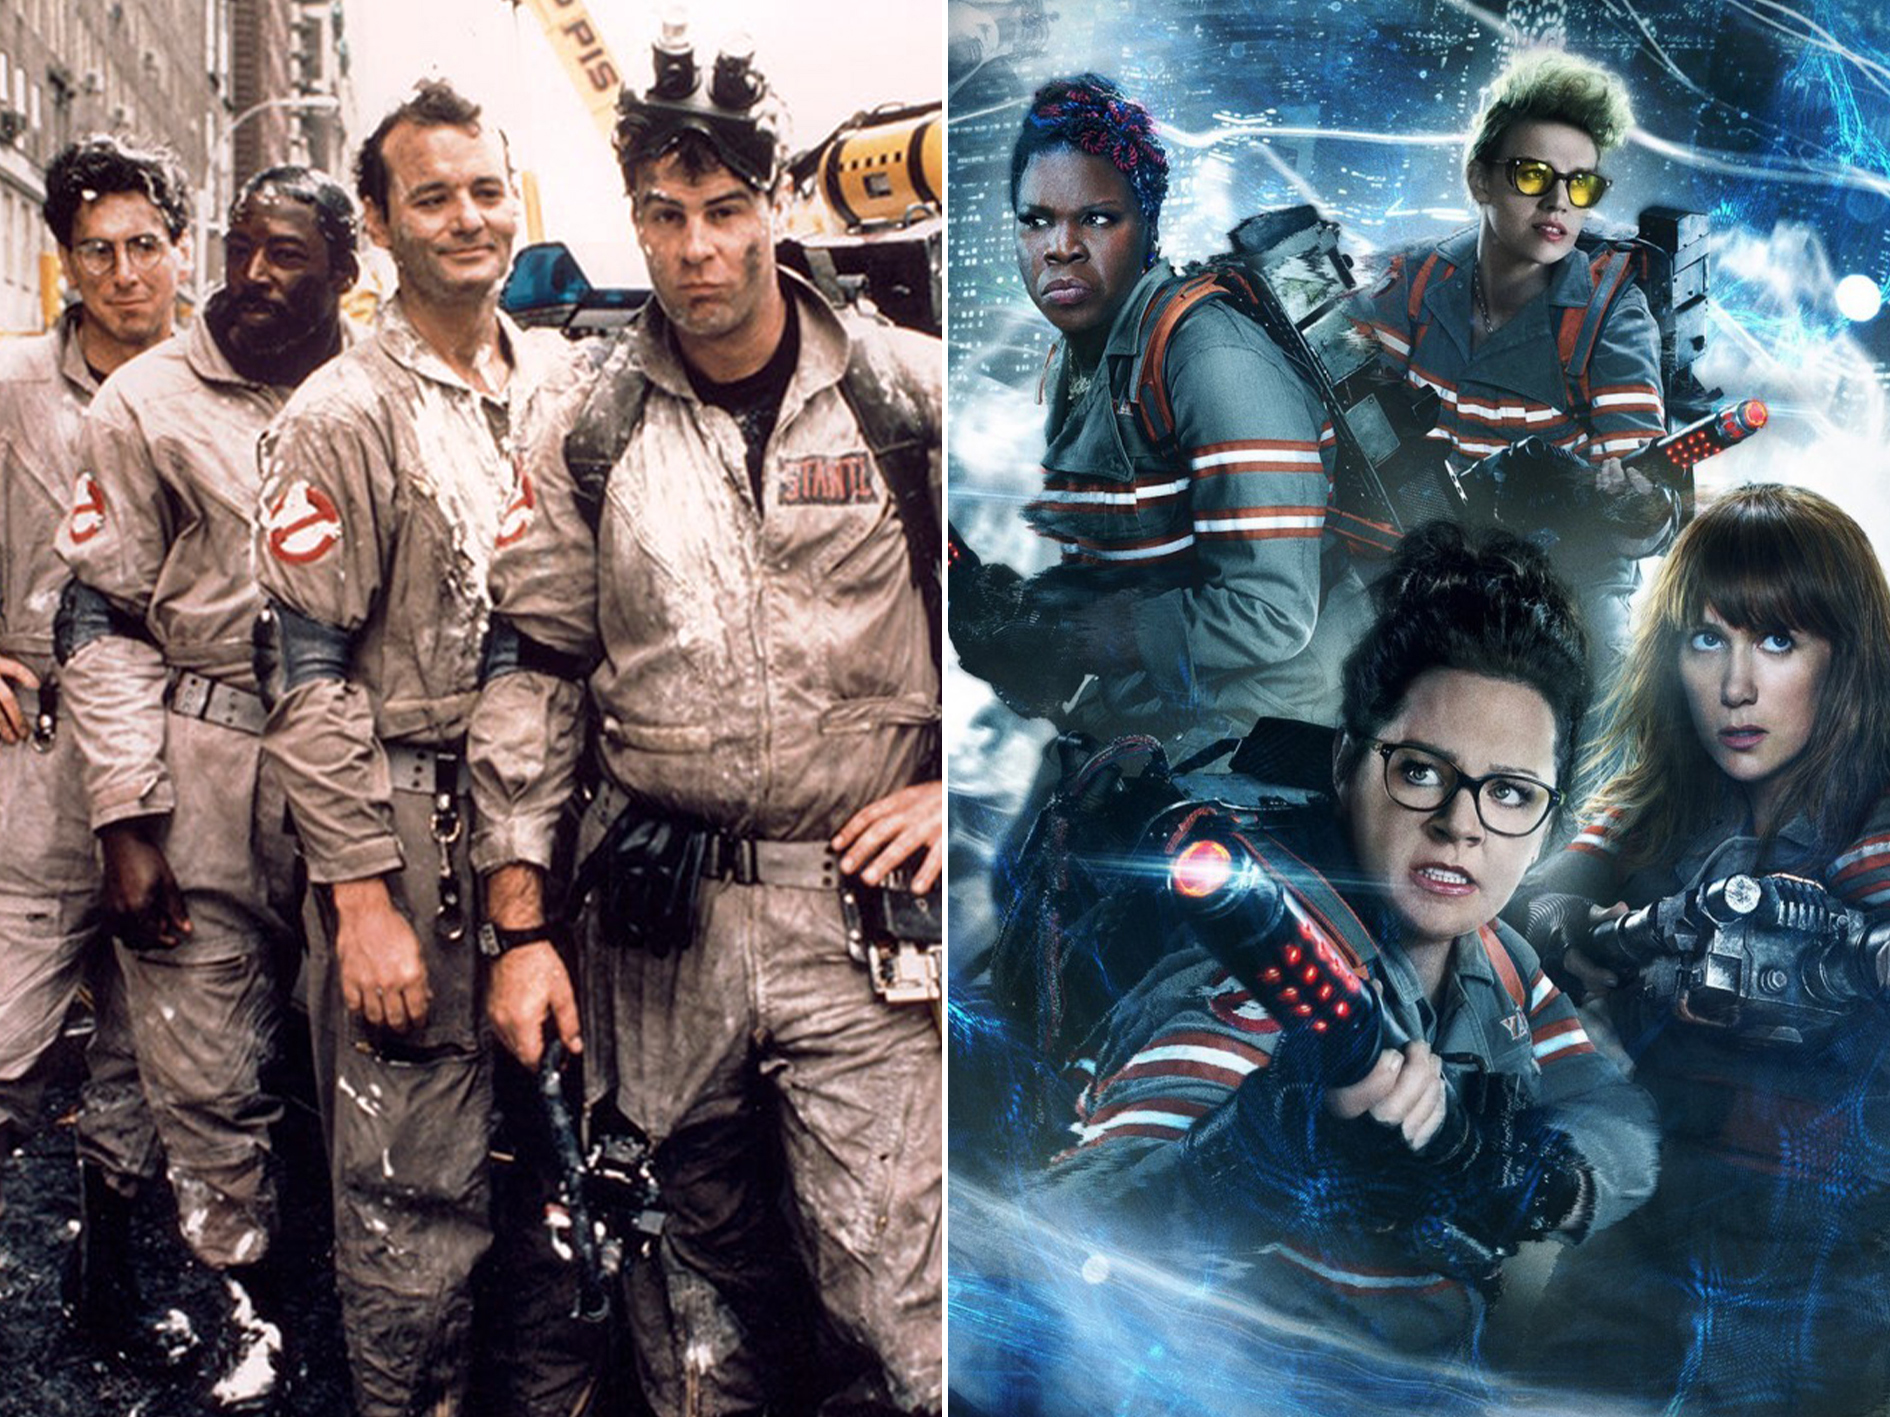 Ghostbusters Awful Remakes Of Classic 80s Films That Should Have Been Left Unmade